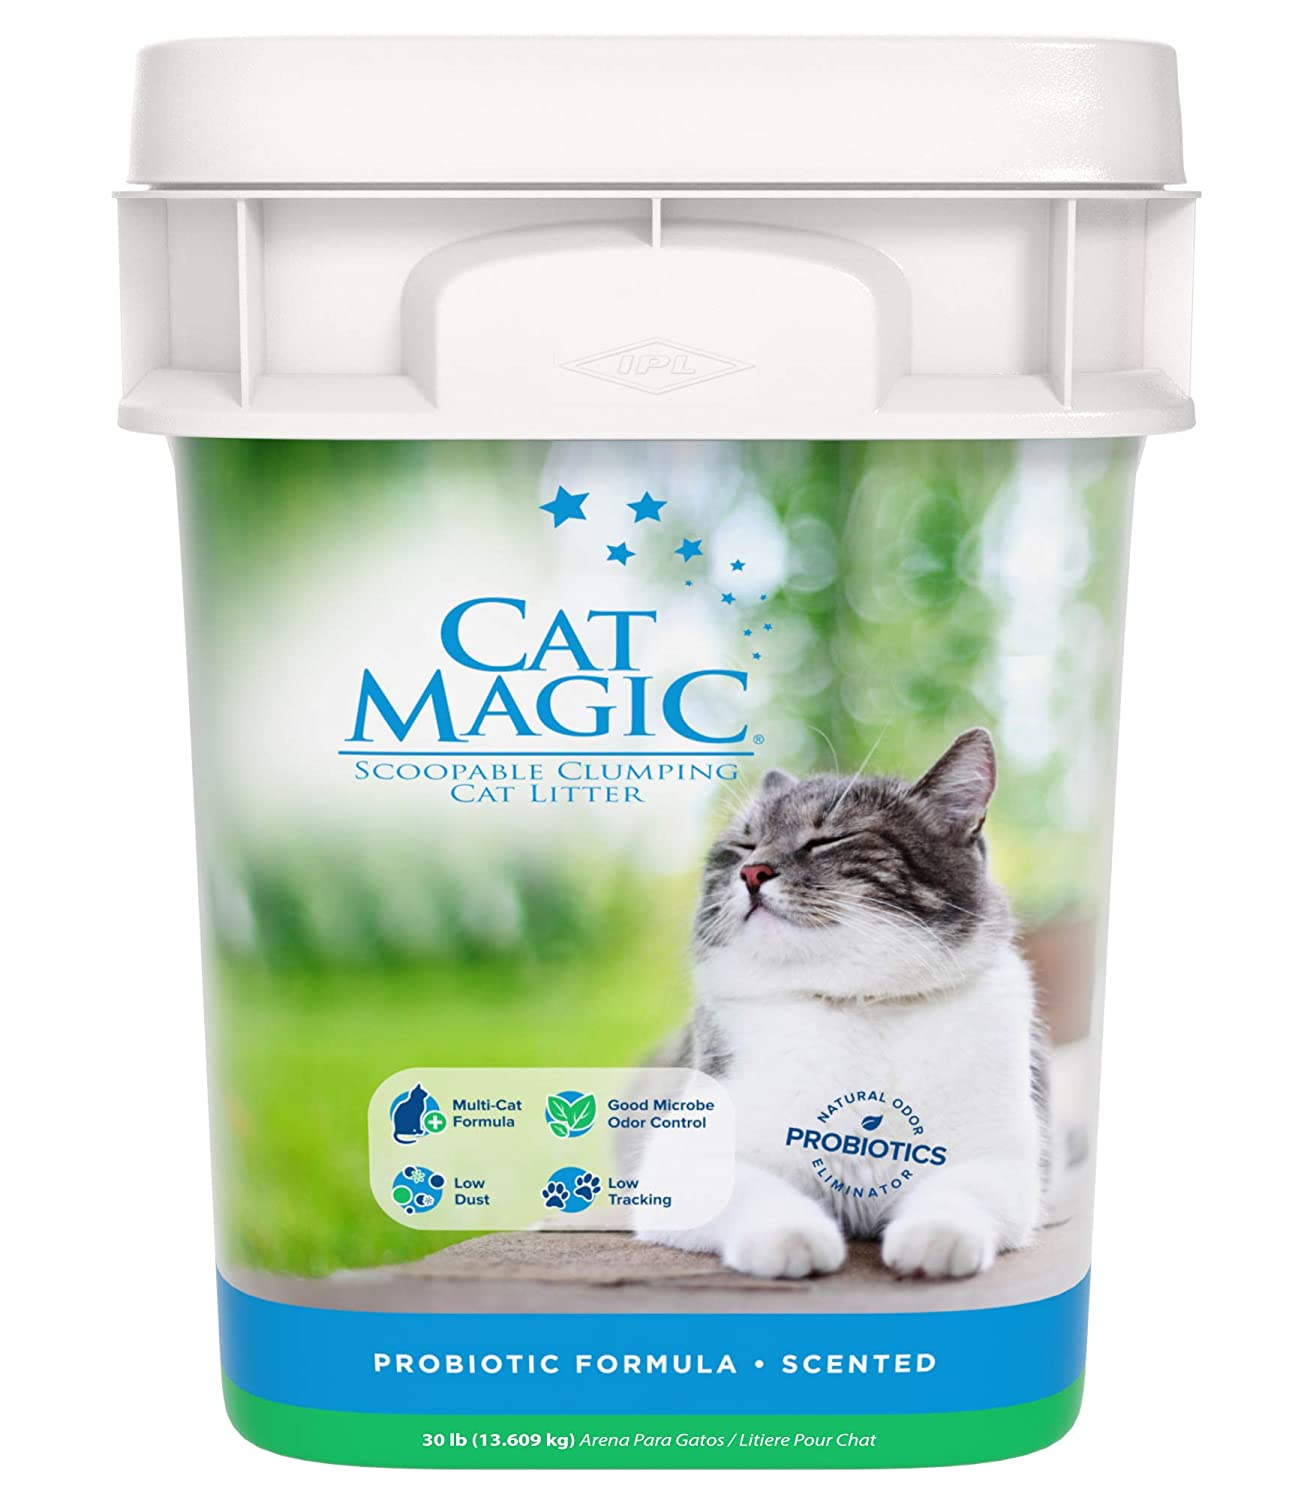 Amazon.com: Cat Magic Scented Clumping Clay Cat Litter, 35-Pound: Pet Supplies